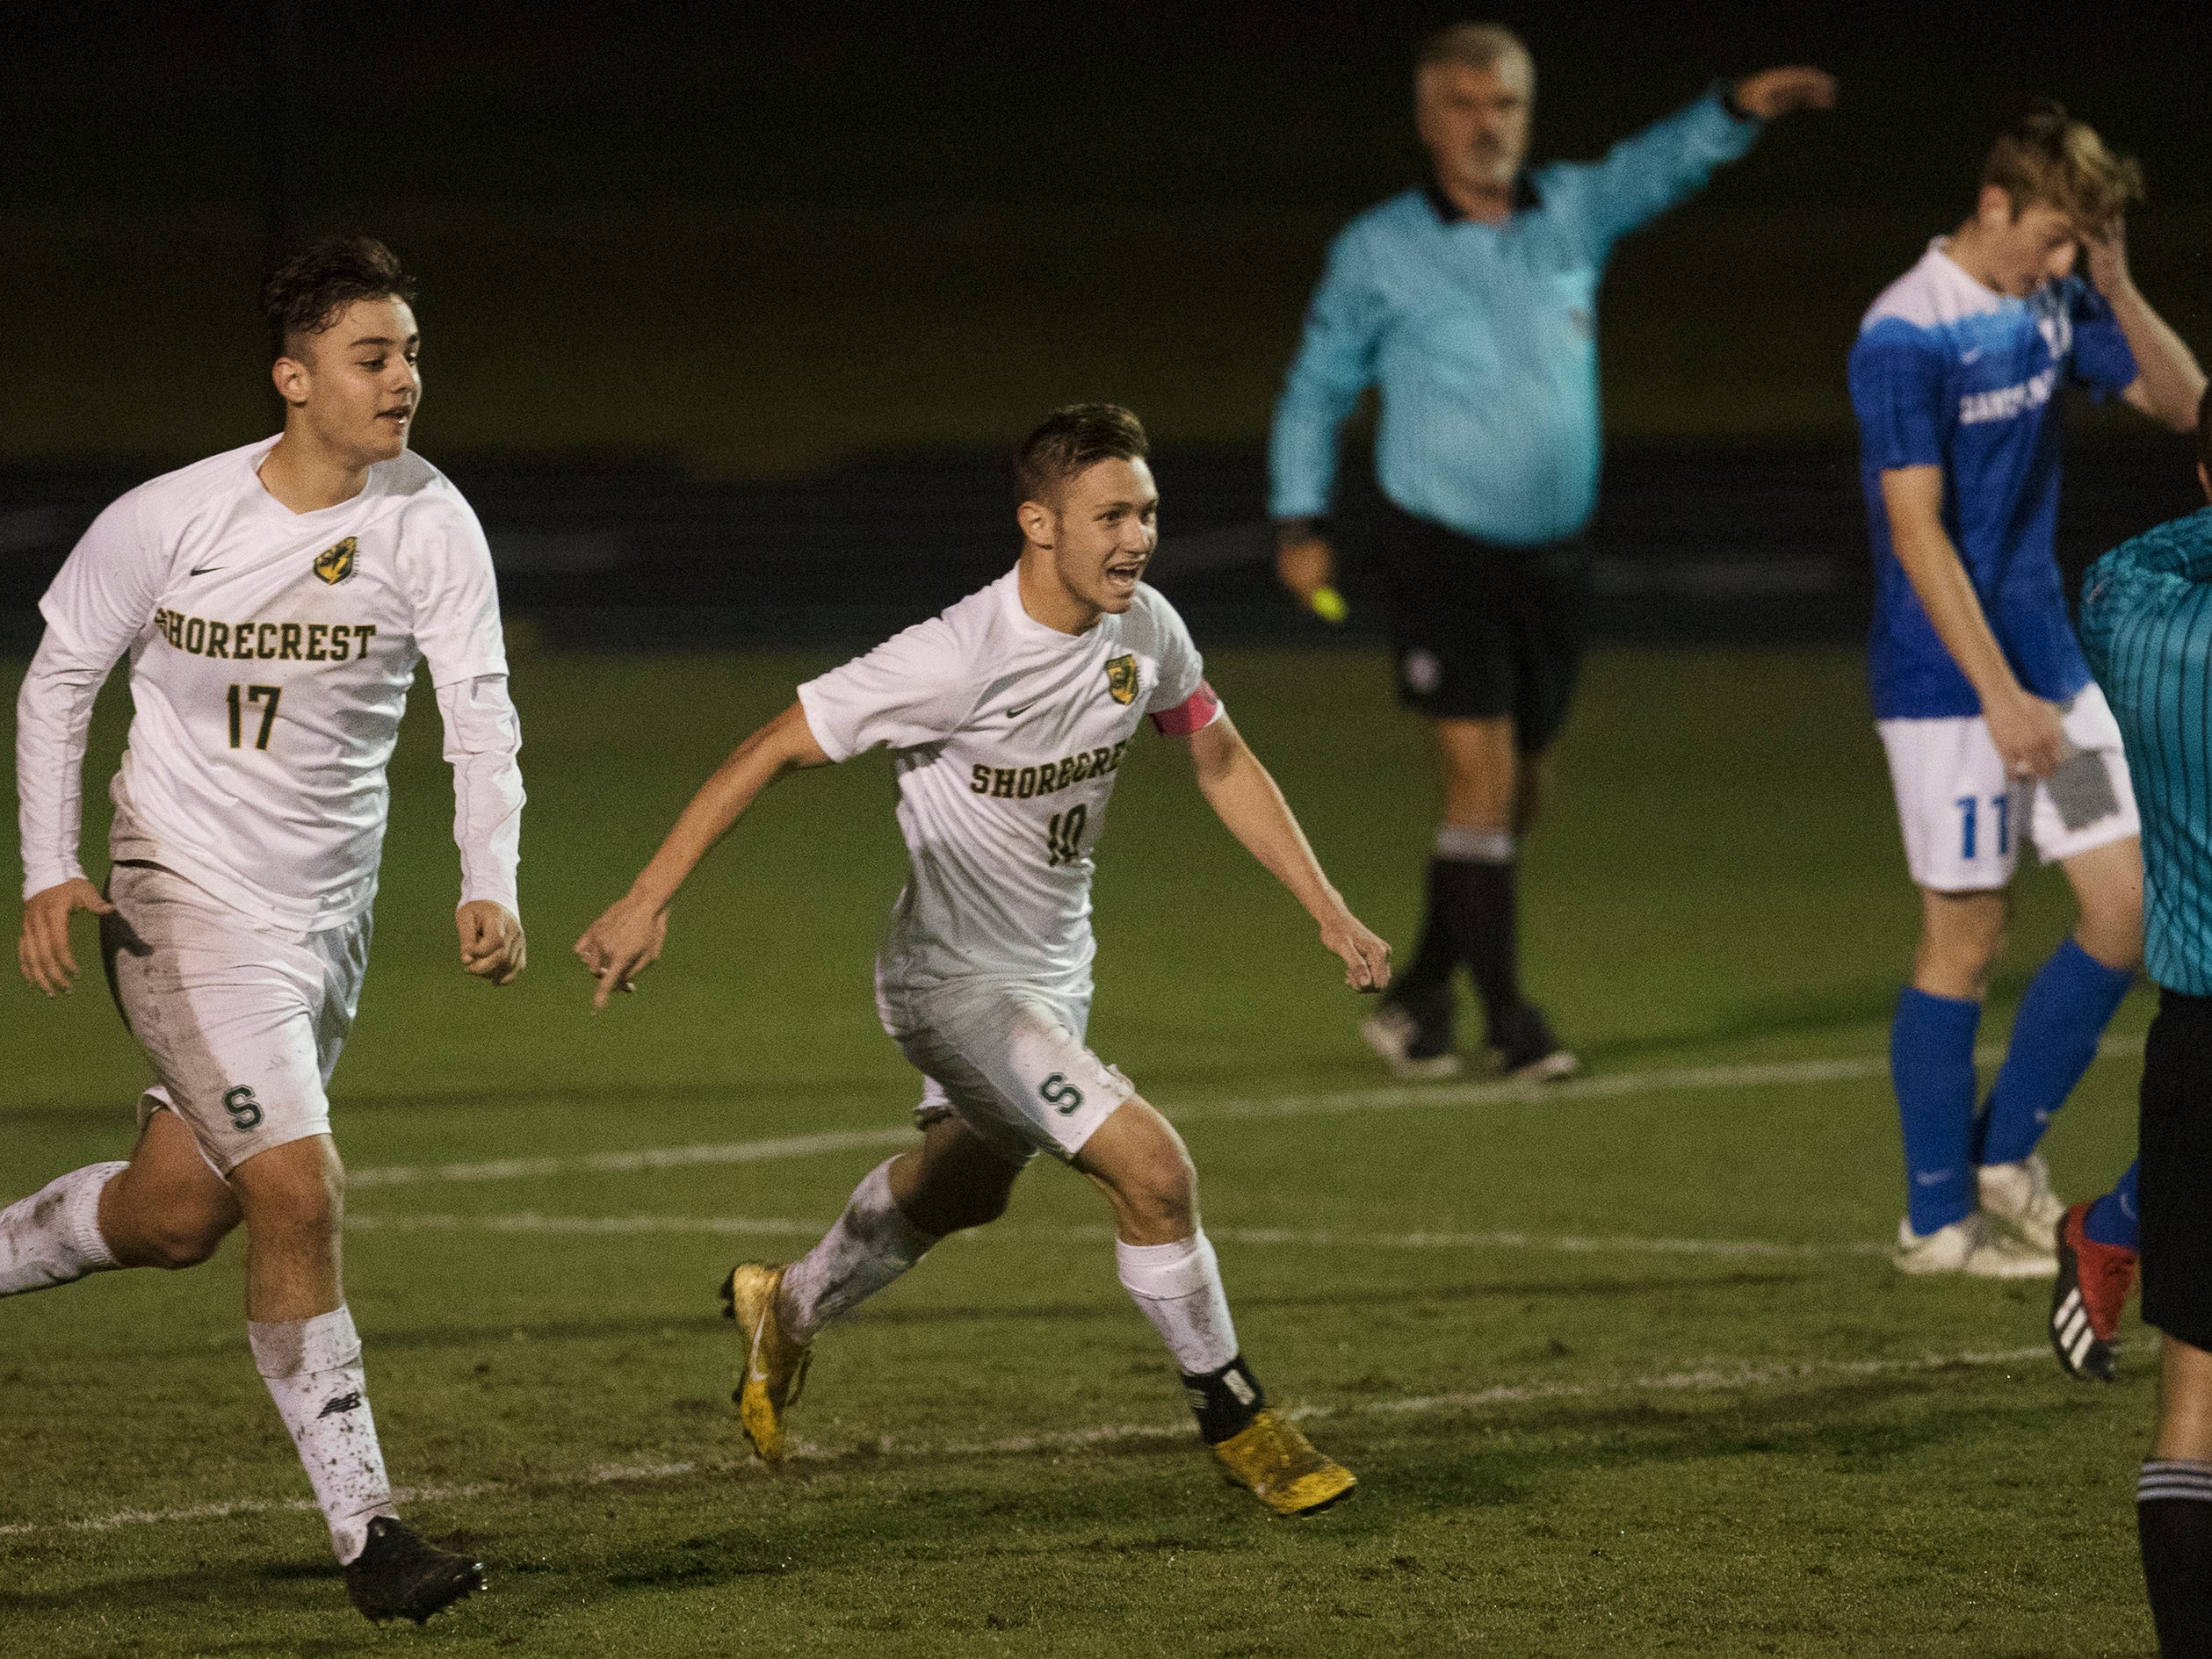 Shorecrest players celebrate scoring a goal against Canterbury on Wednesday in the Class 1A regional soccer final at Canterbury in Fort Myers. Shorecrest beat Canterbury 3-2.